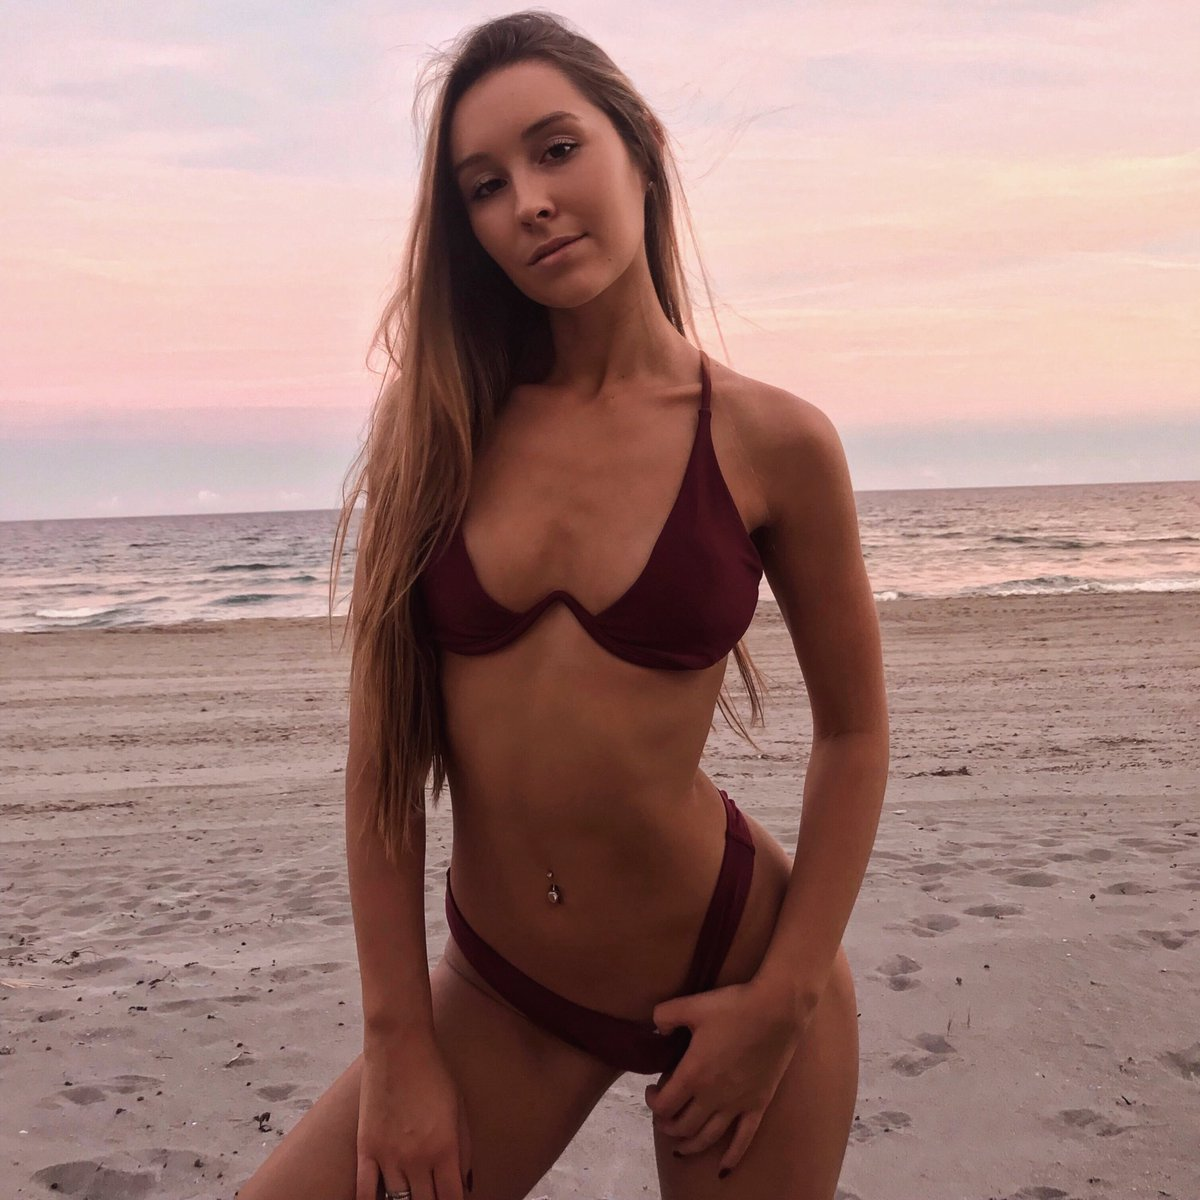 braless Images Nicky Gile Images naked photo 2017